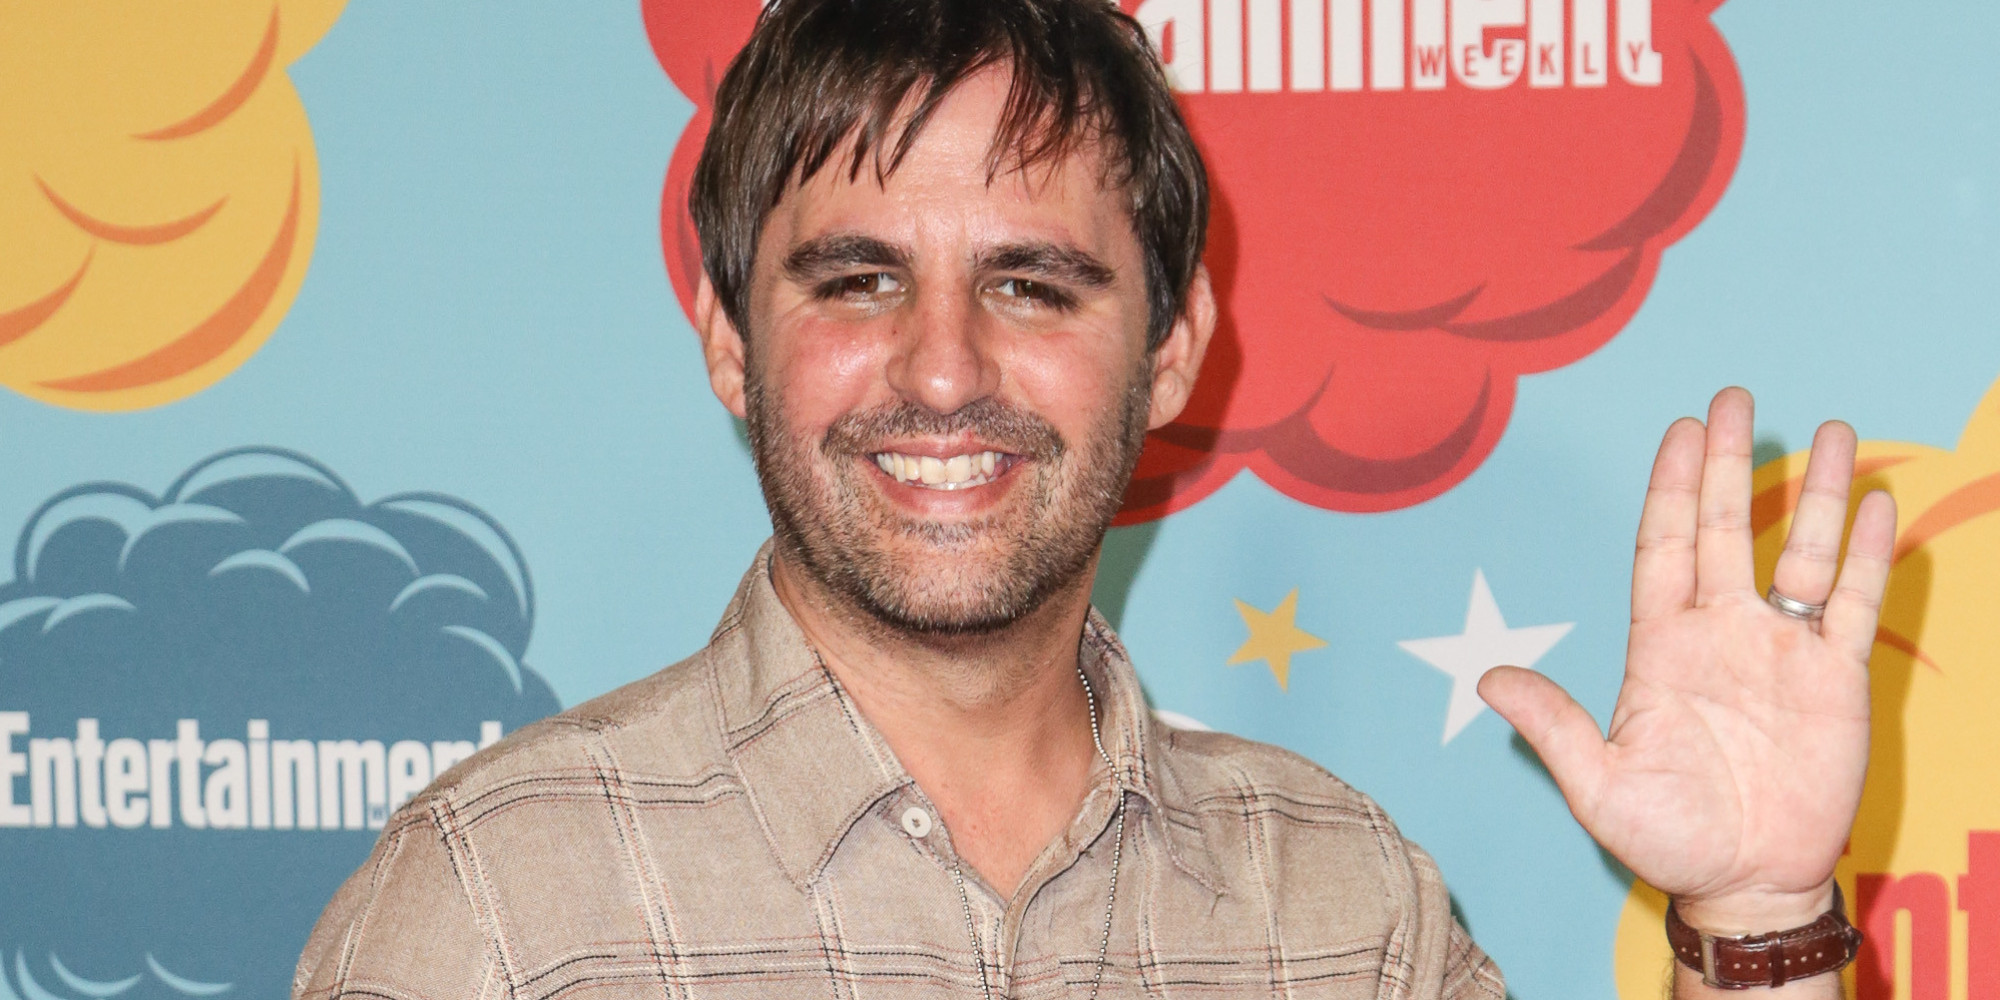 Woohoo, Roberto Orci Won't Get To Ruin Star Trek 3 After All!